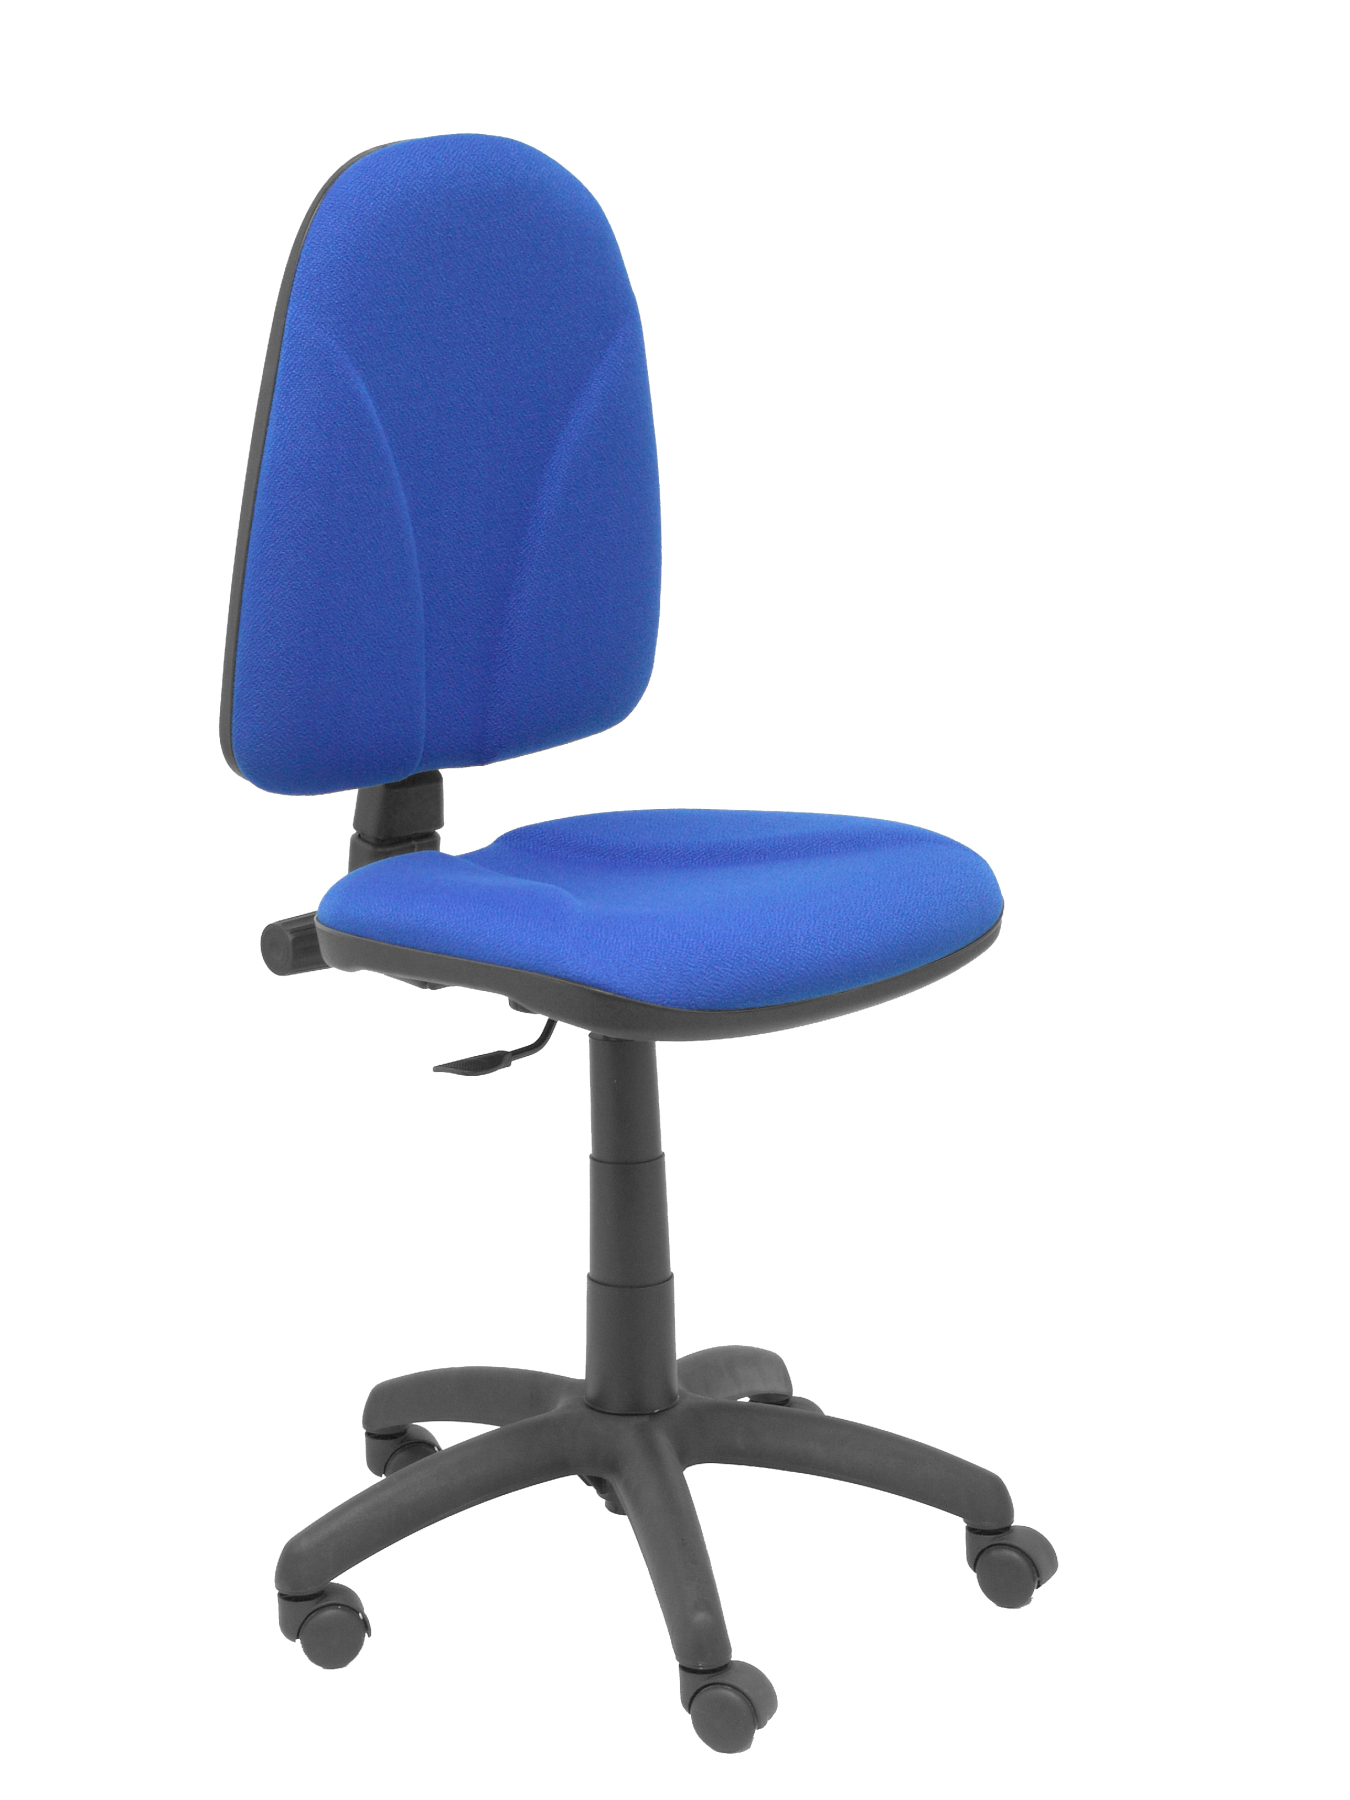 Ergonomic office chair and anatomical with mechanism permanent contact and adjustable height-Seat an